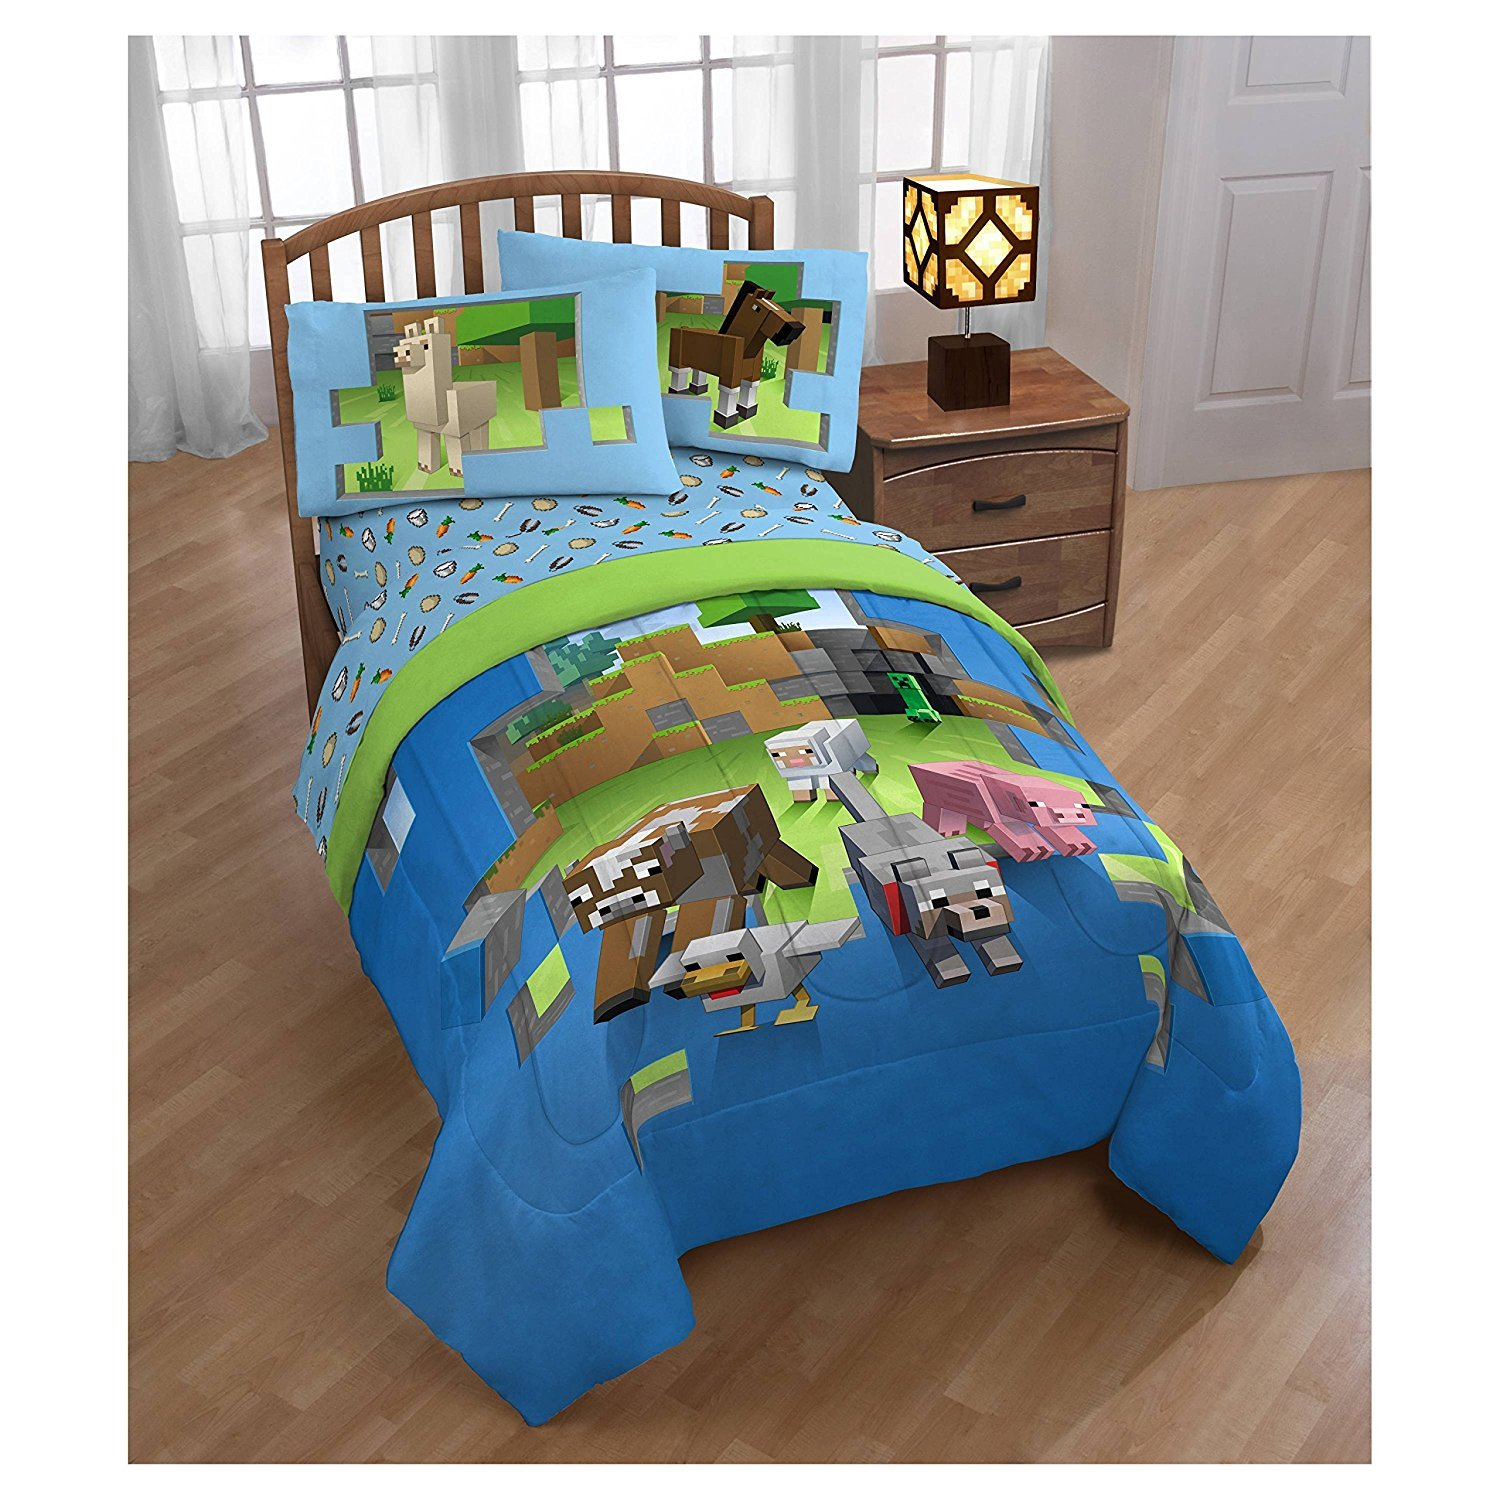 Minecraft Animals TWIN Comforter & TWIN Sheets ~Very Hard to Find~ Fast Shipping